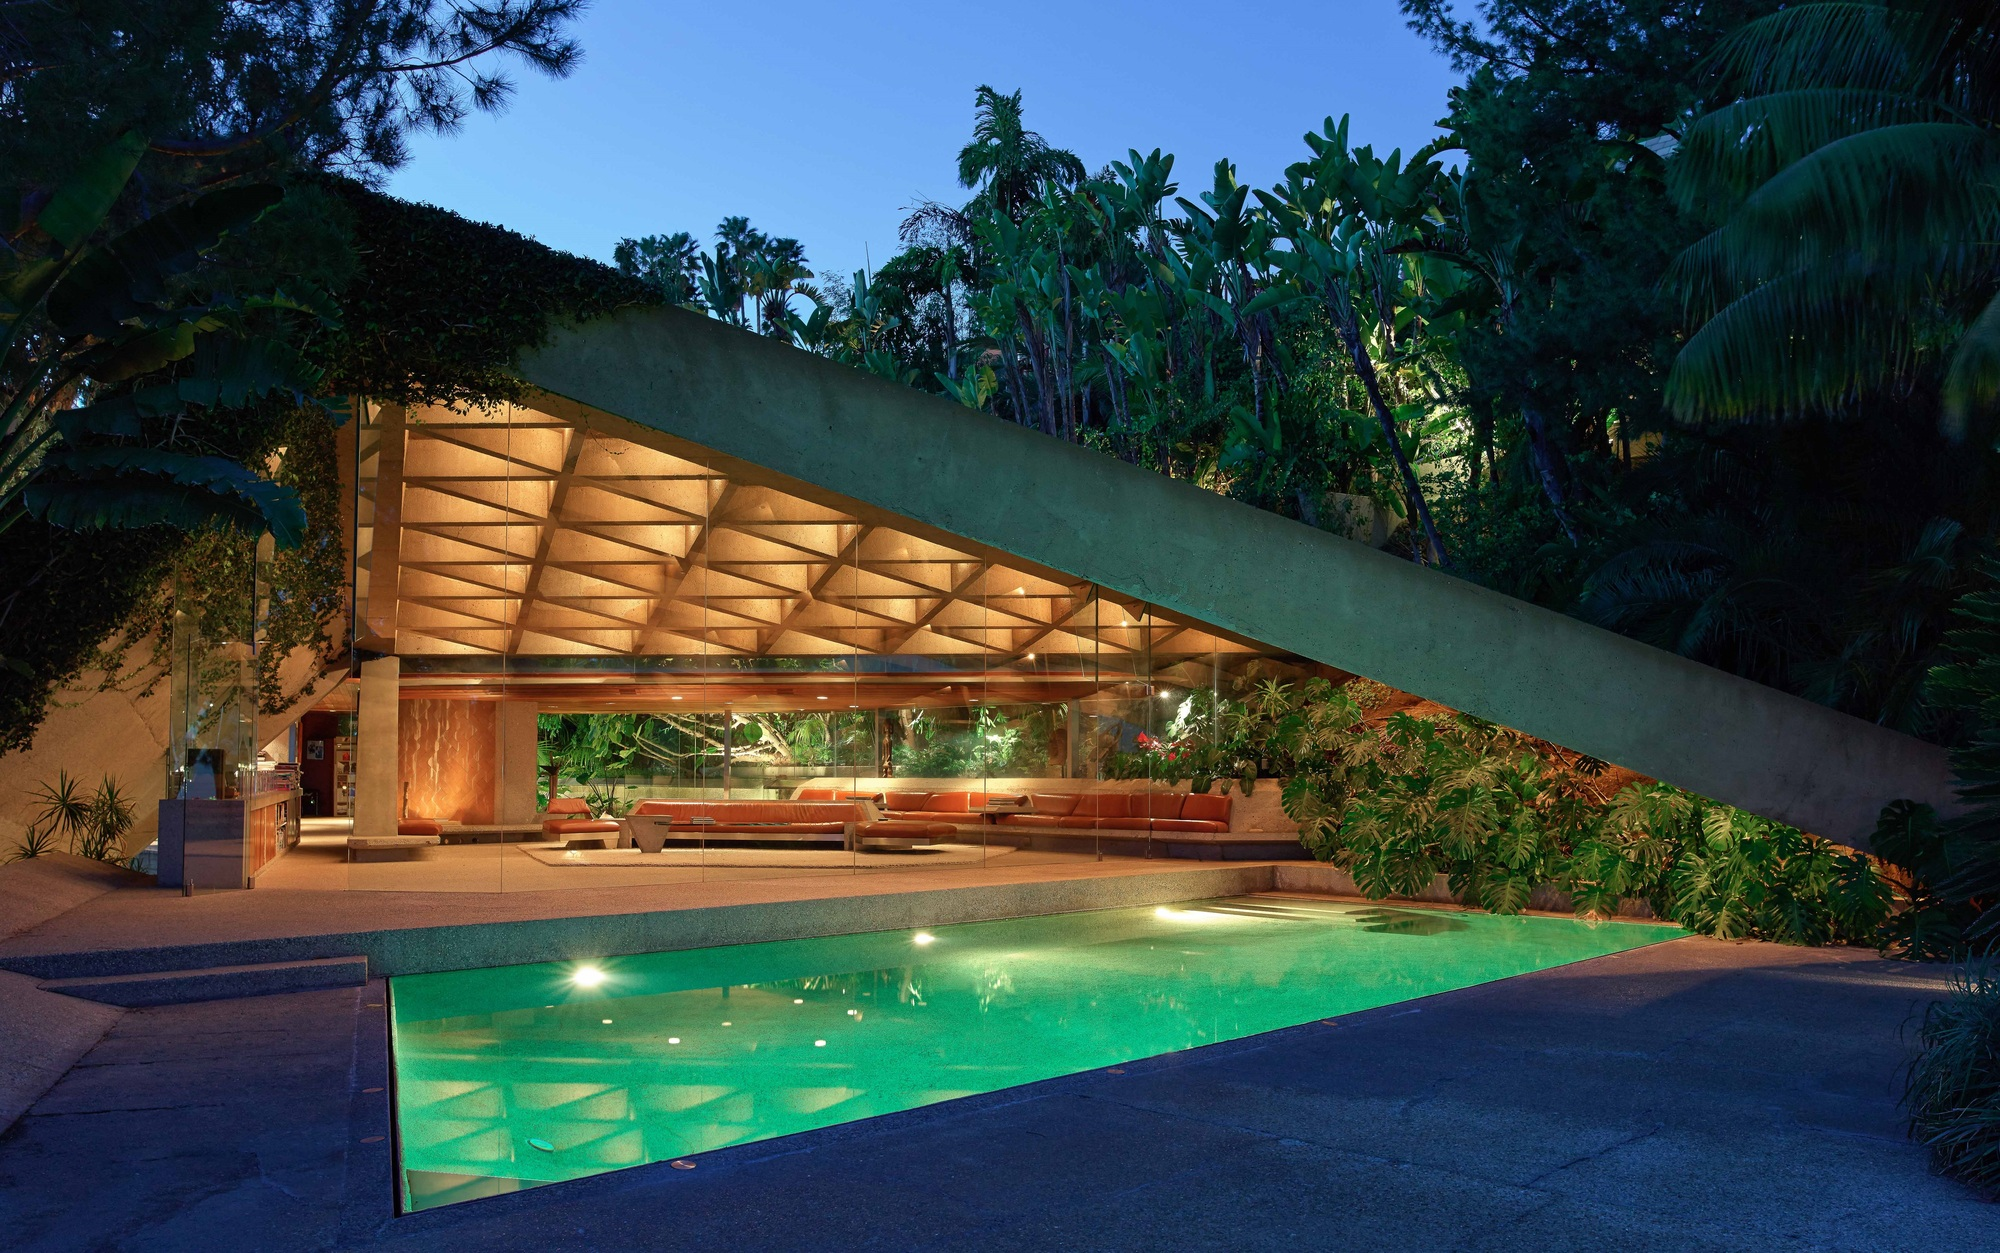 John lautner 39 s goldstein house gifted to lacma by its for Big modern house tour